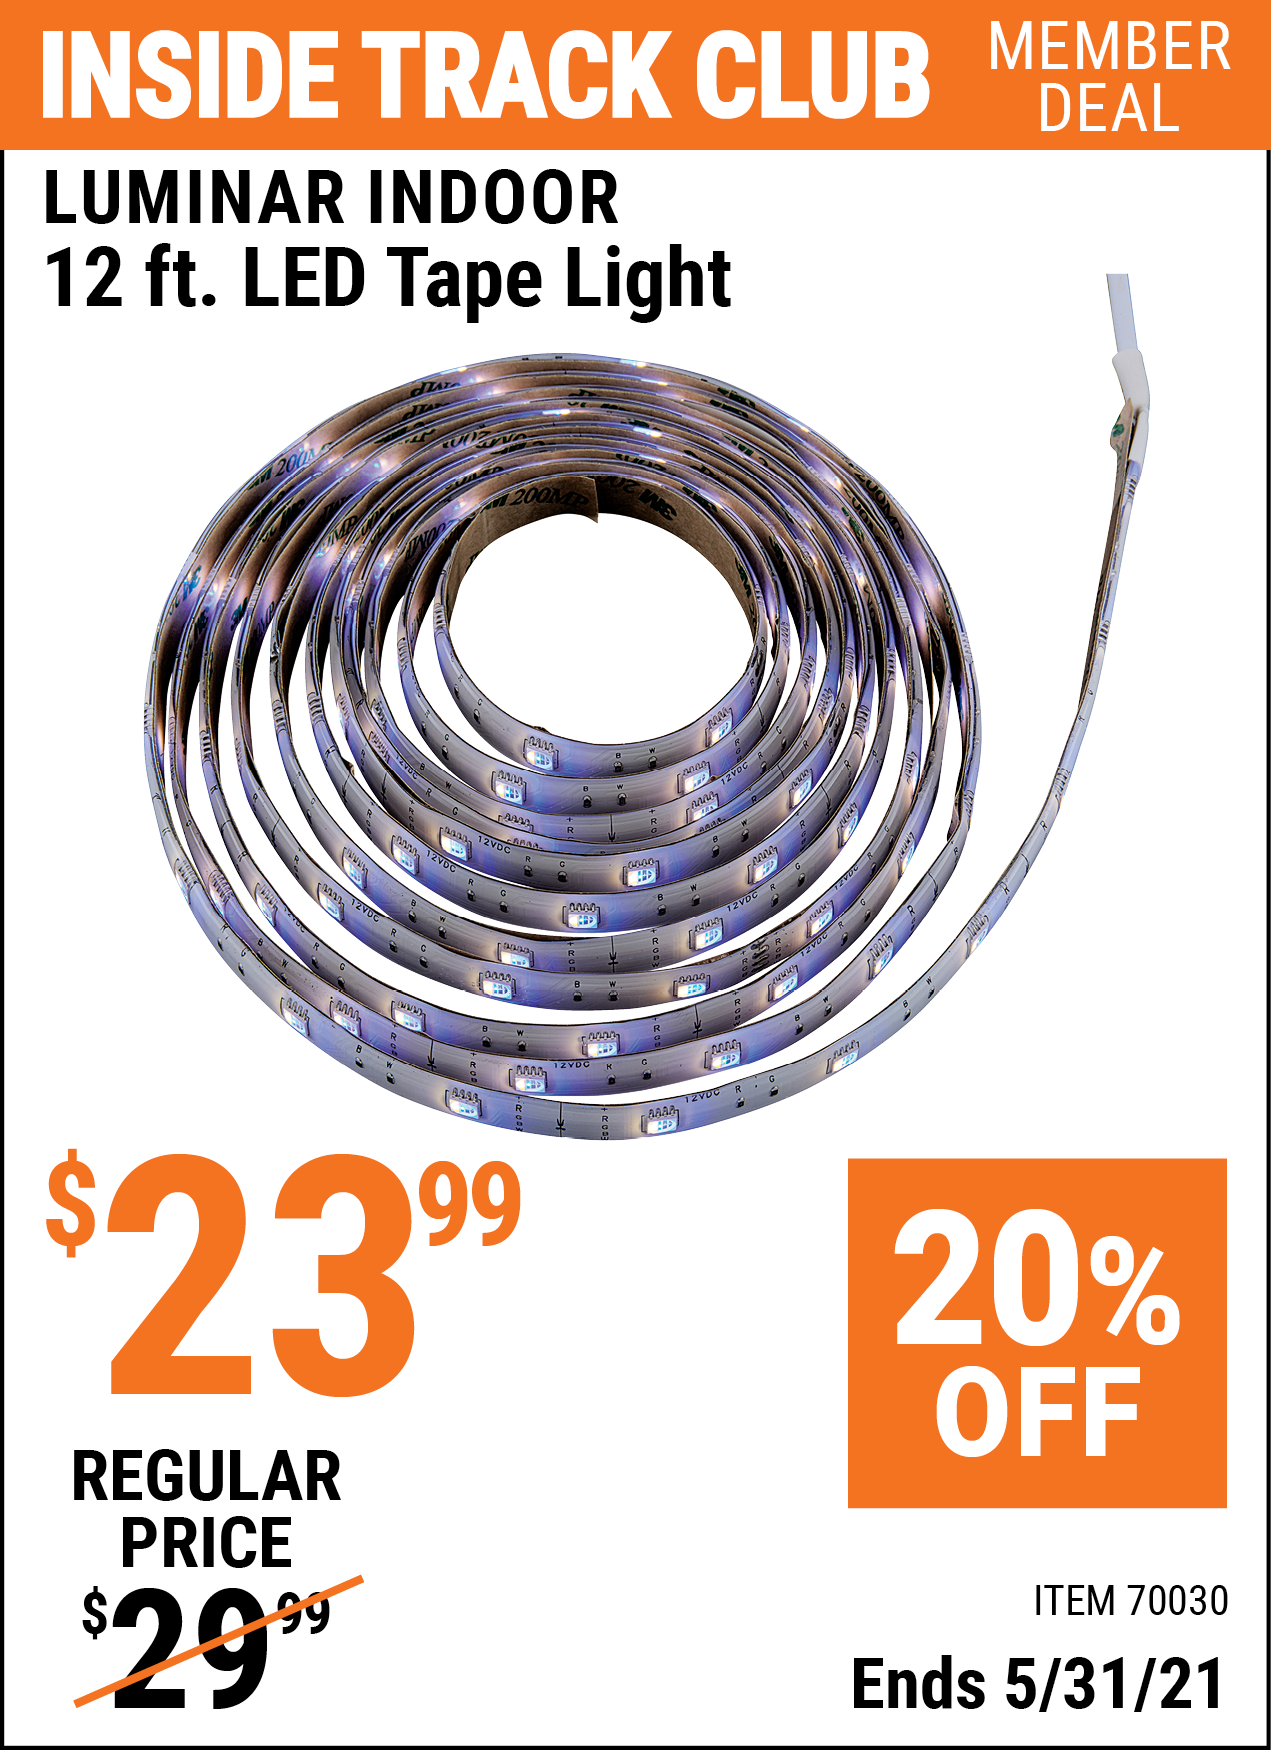 Inside Track Club members can buy the LUMINAR INDOOR 12 Ft. LED Tape Light (Item 70030) for $23.99, valid through 5/31/2021.